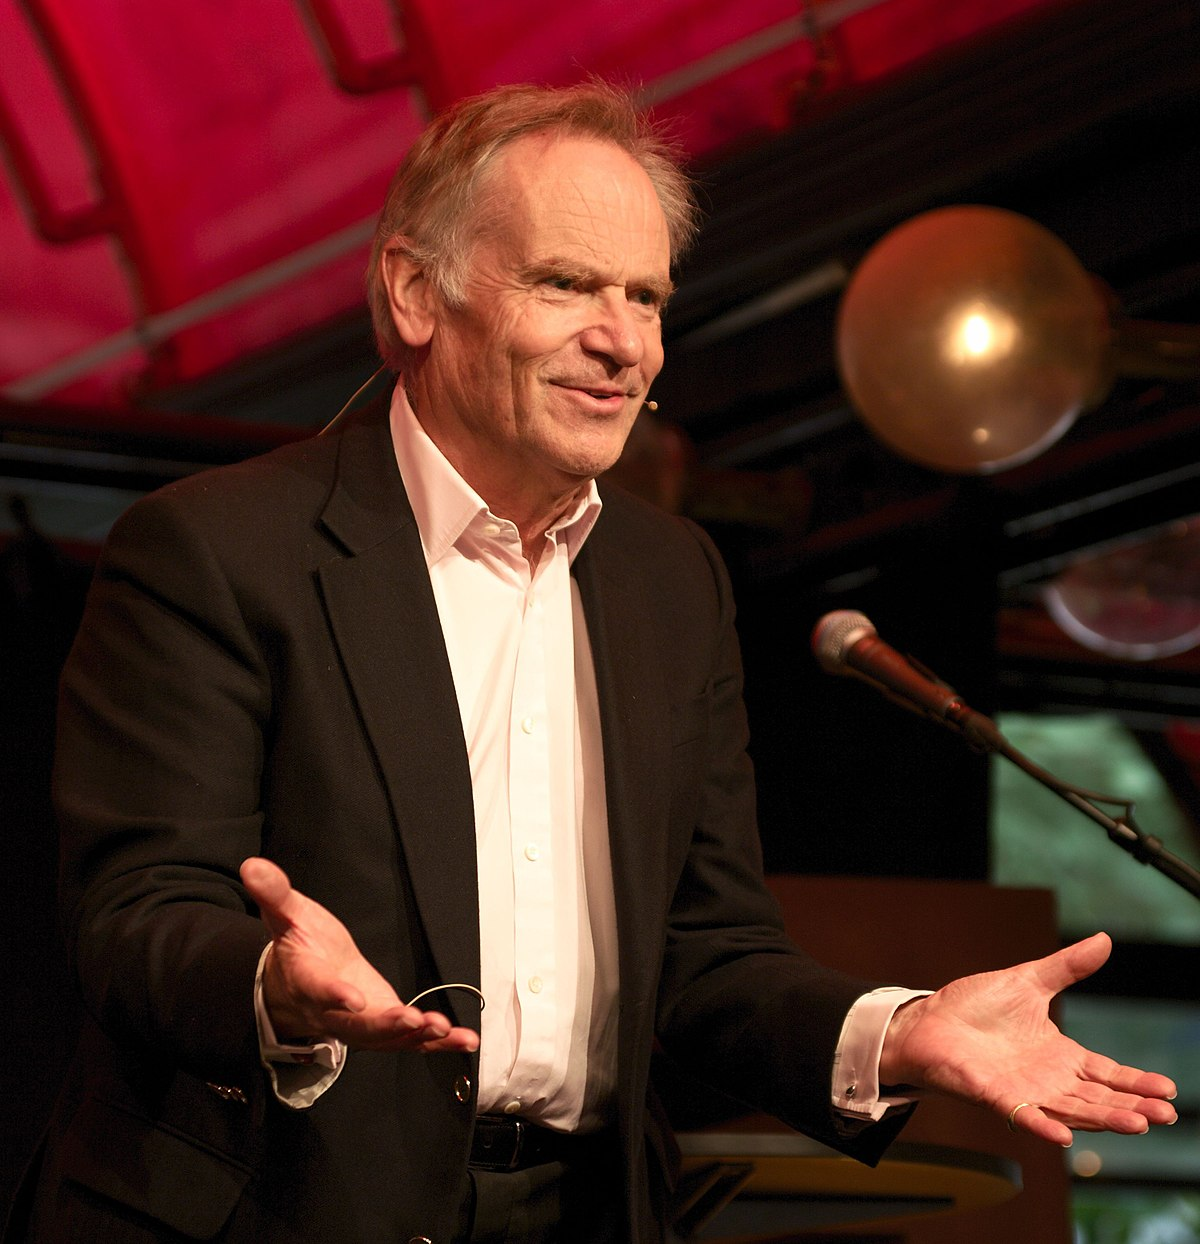 Jeffrey Archer - Wikip...